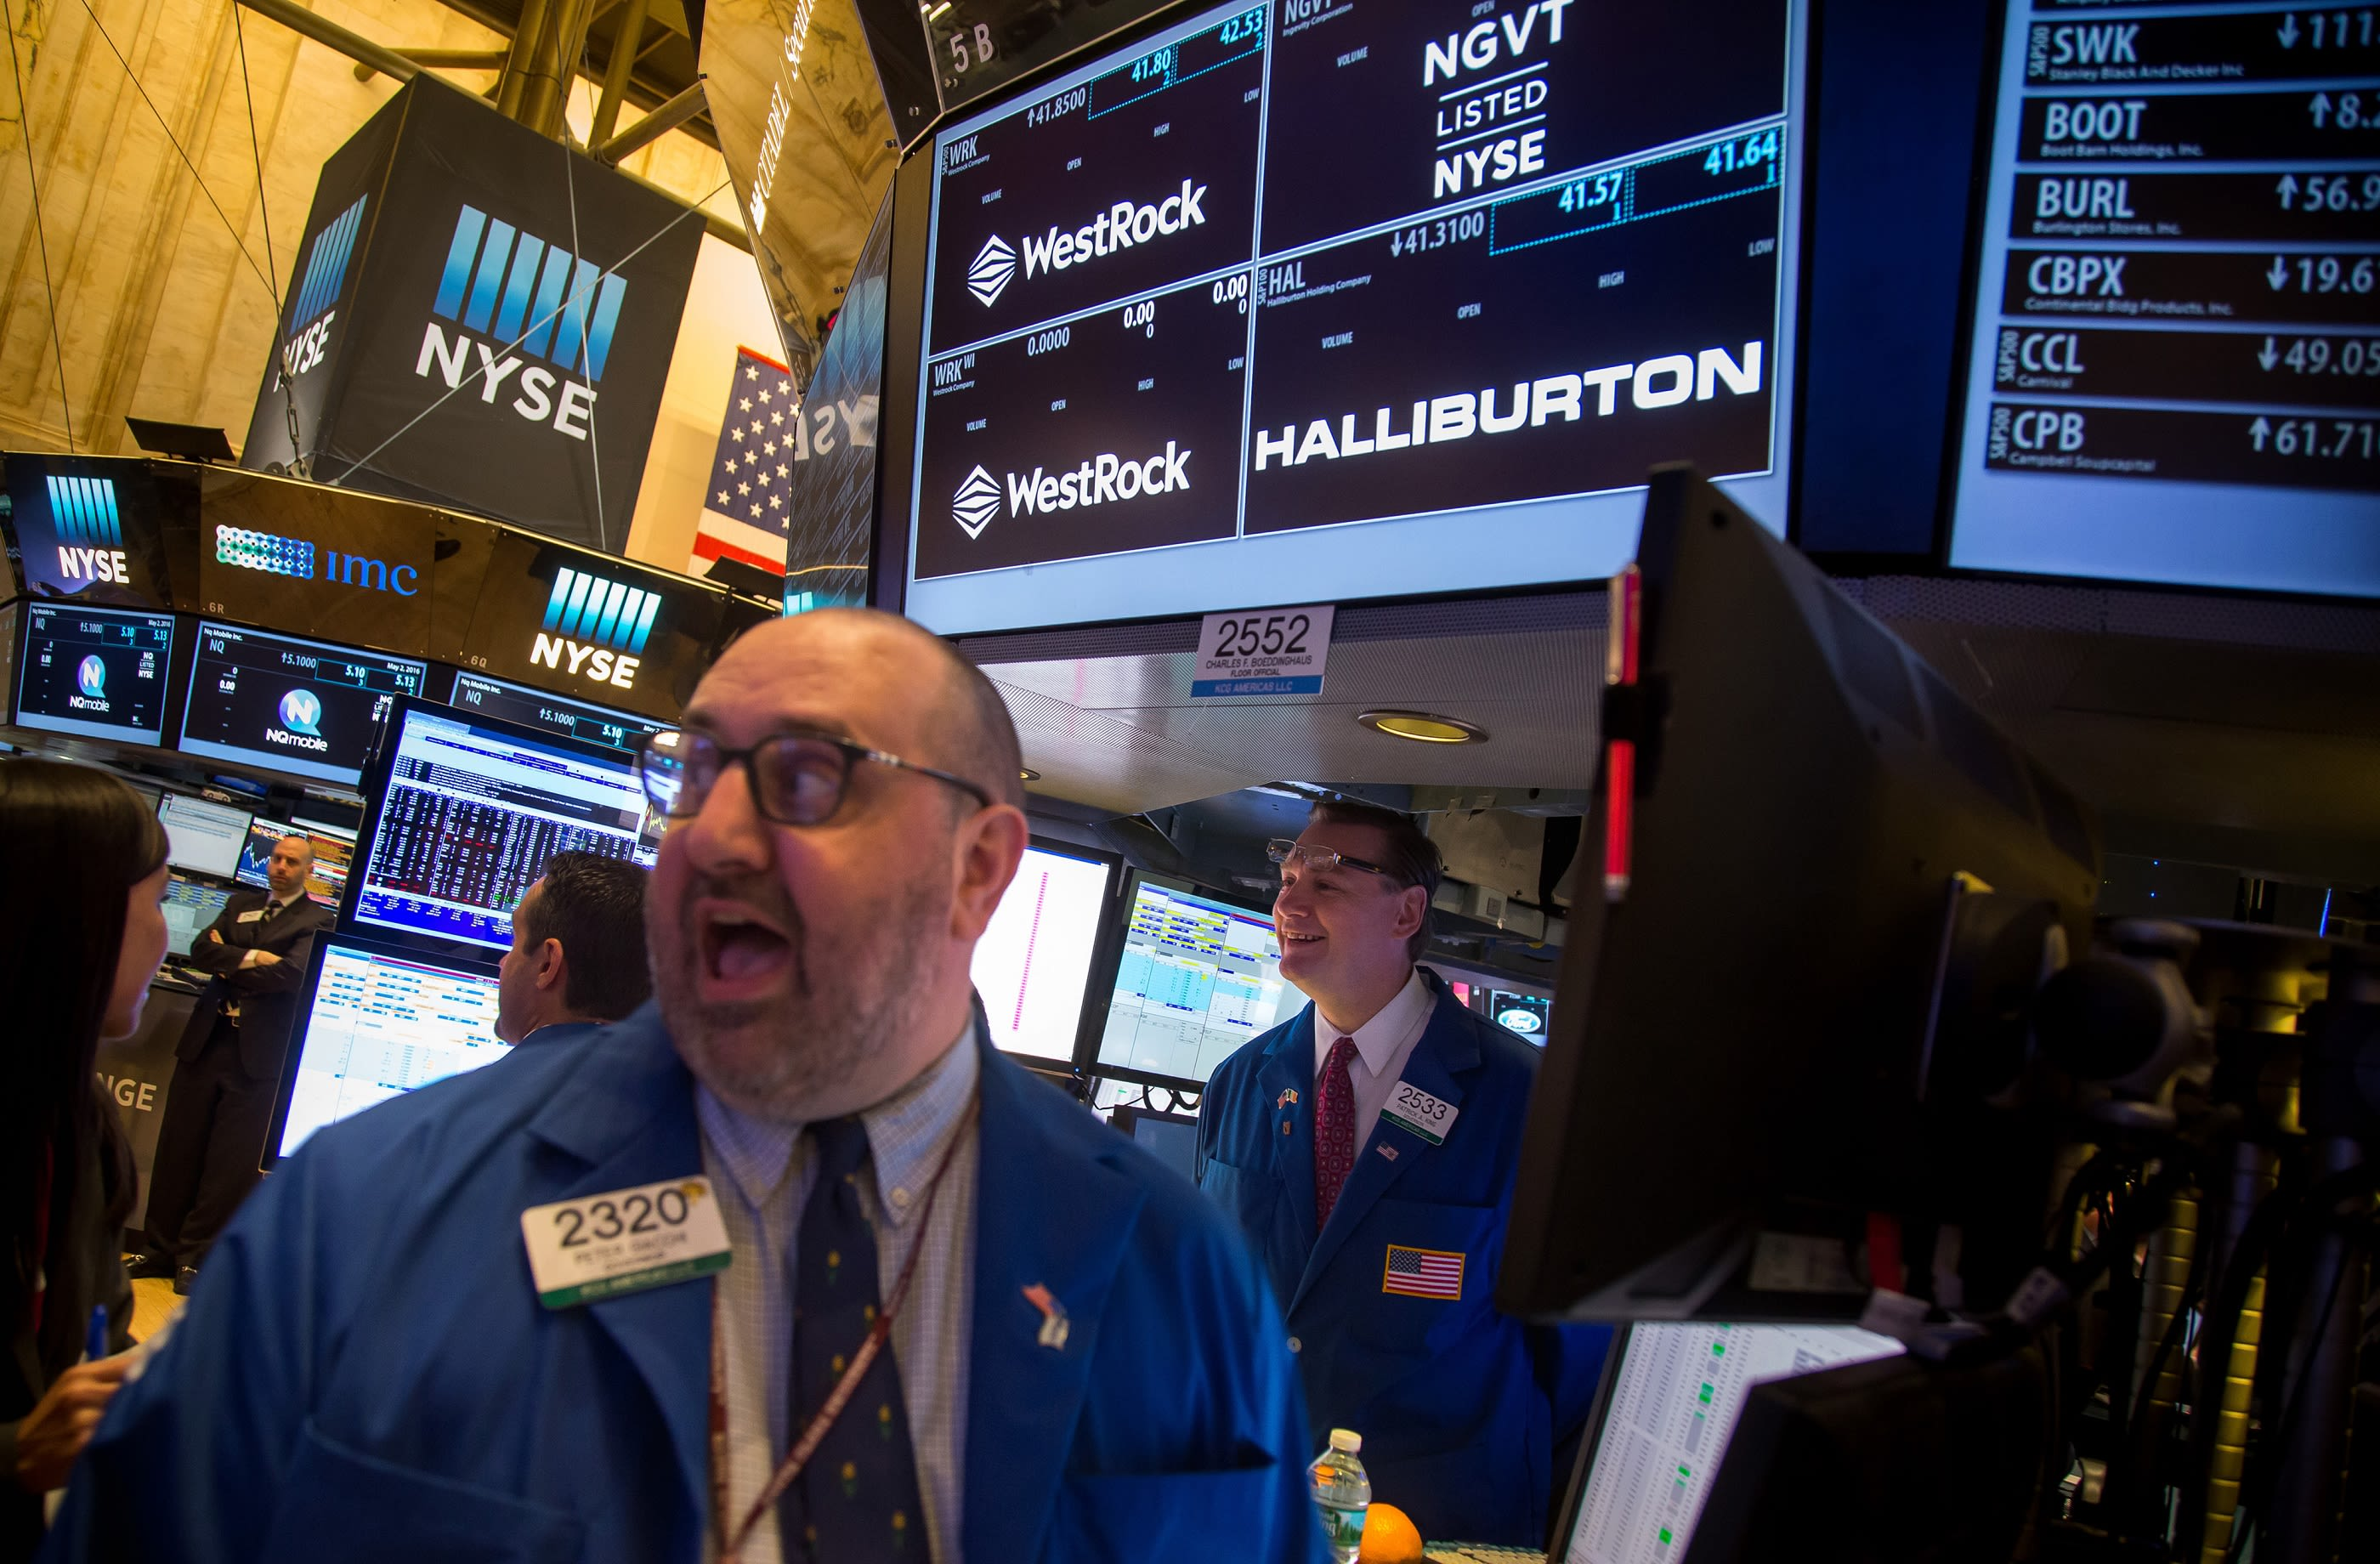 Stocks making the biggest moves: Starbucks, Twitter, Alphabet, Goodyear